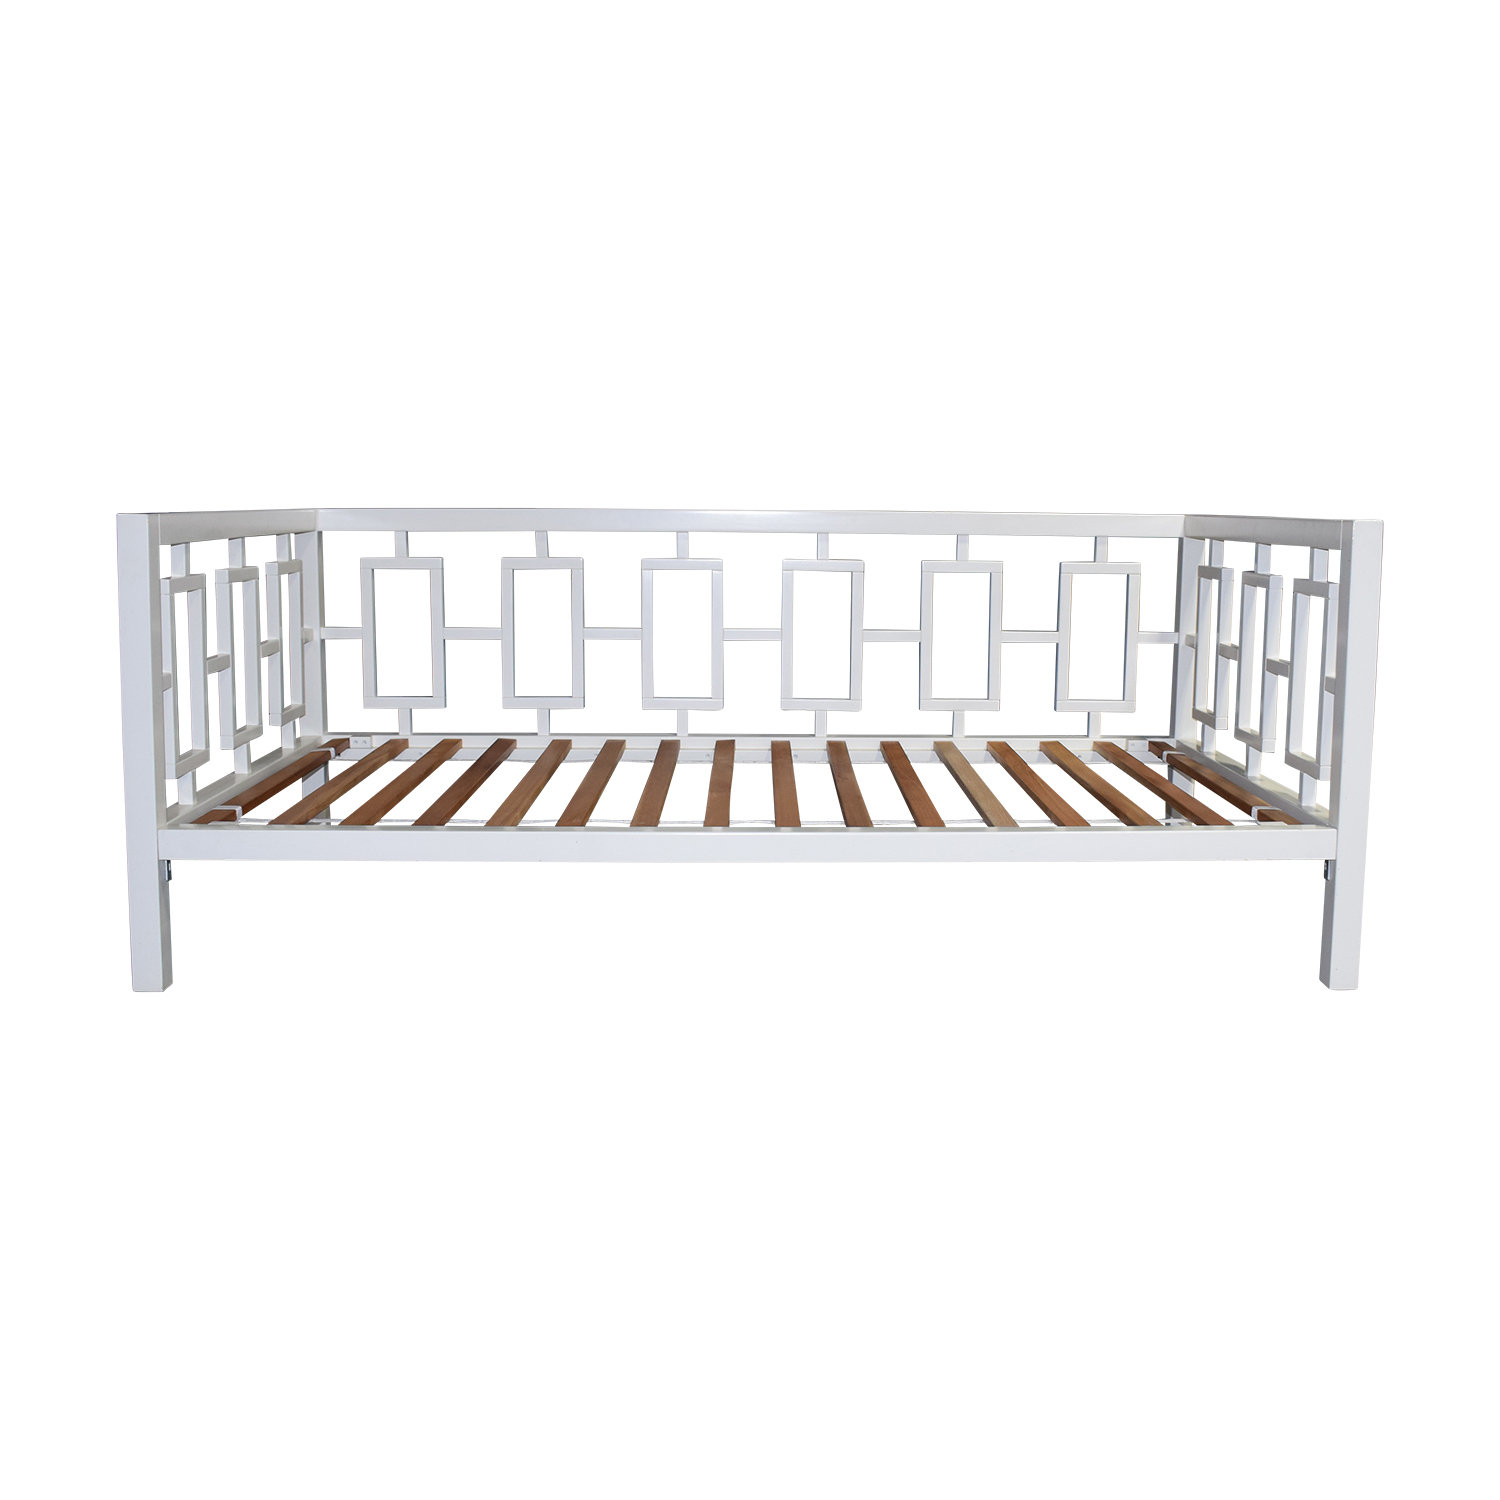 King Size Bed Clearance